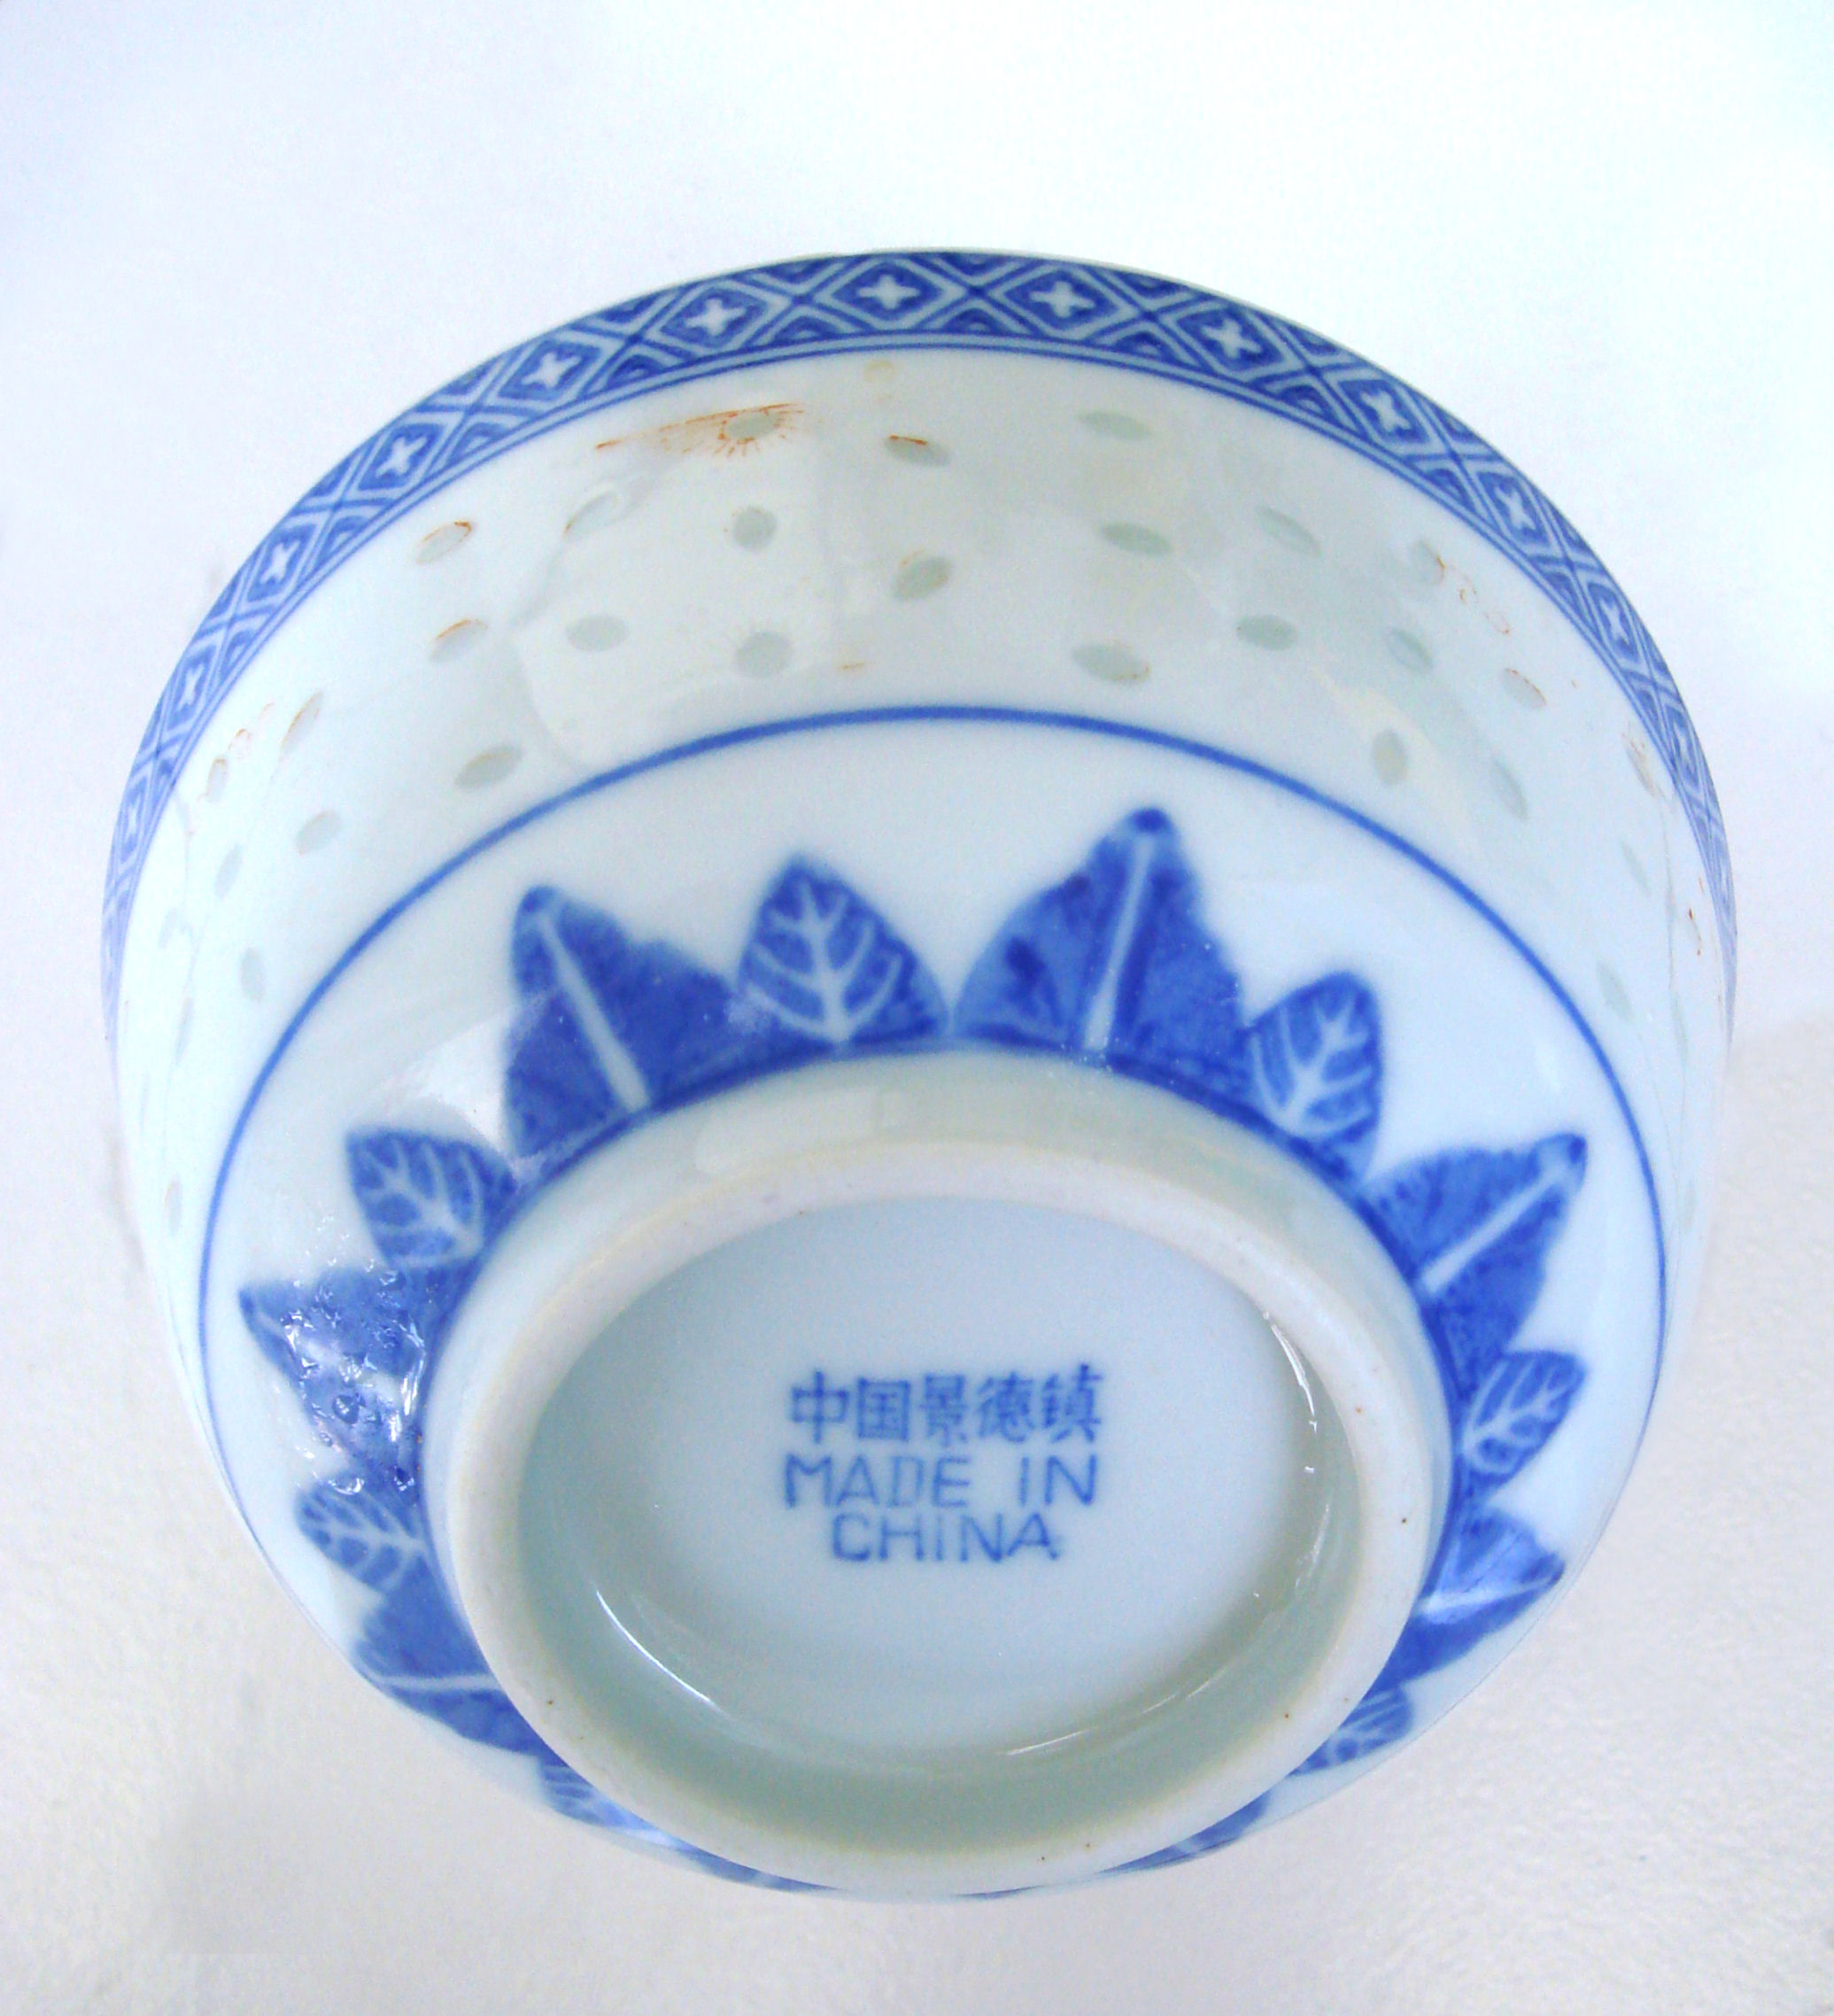 porcelain jingdezhen Jingdezhen ceramic history museum the blue-and-white porcelain this museum is located in the panlong mountains, outside the city of jingdezhen in jiangxi province panlong means 'curling dragons,' and the location of the.